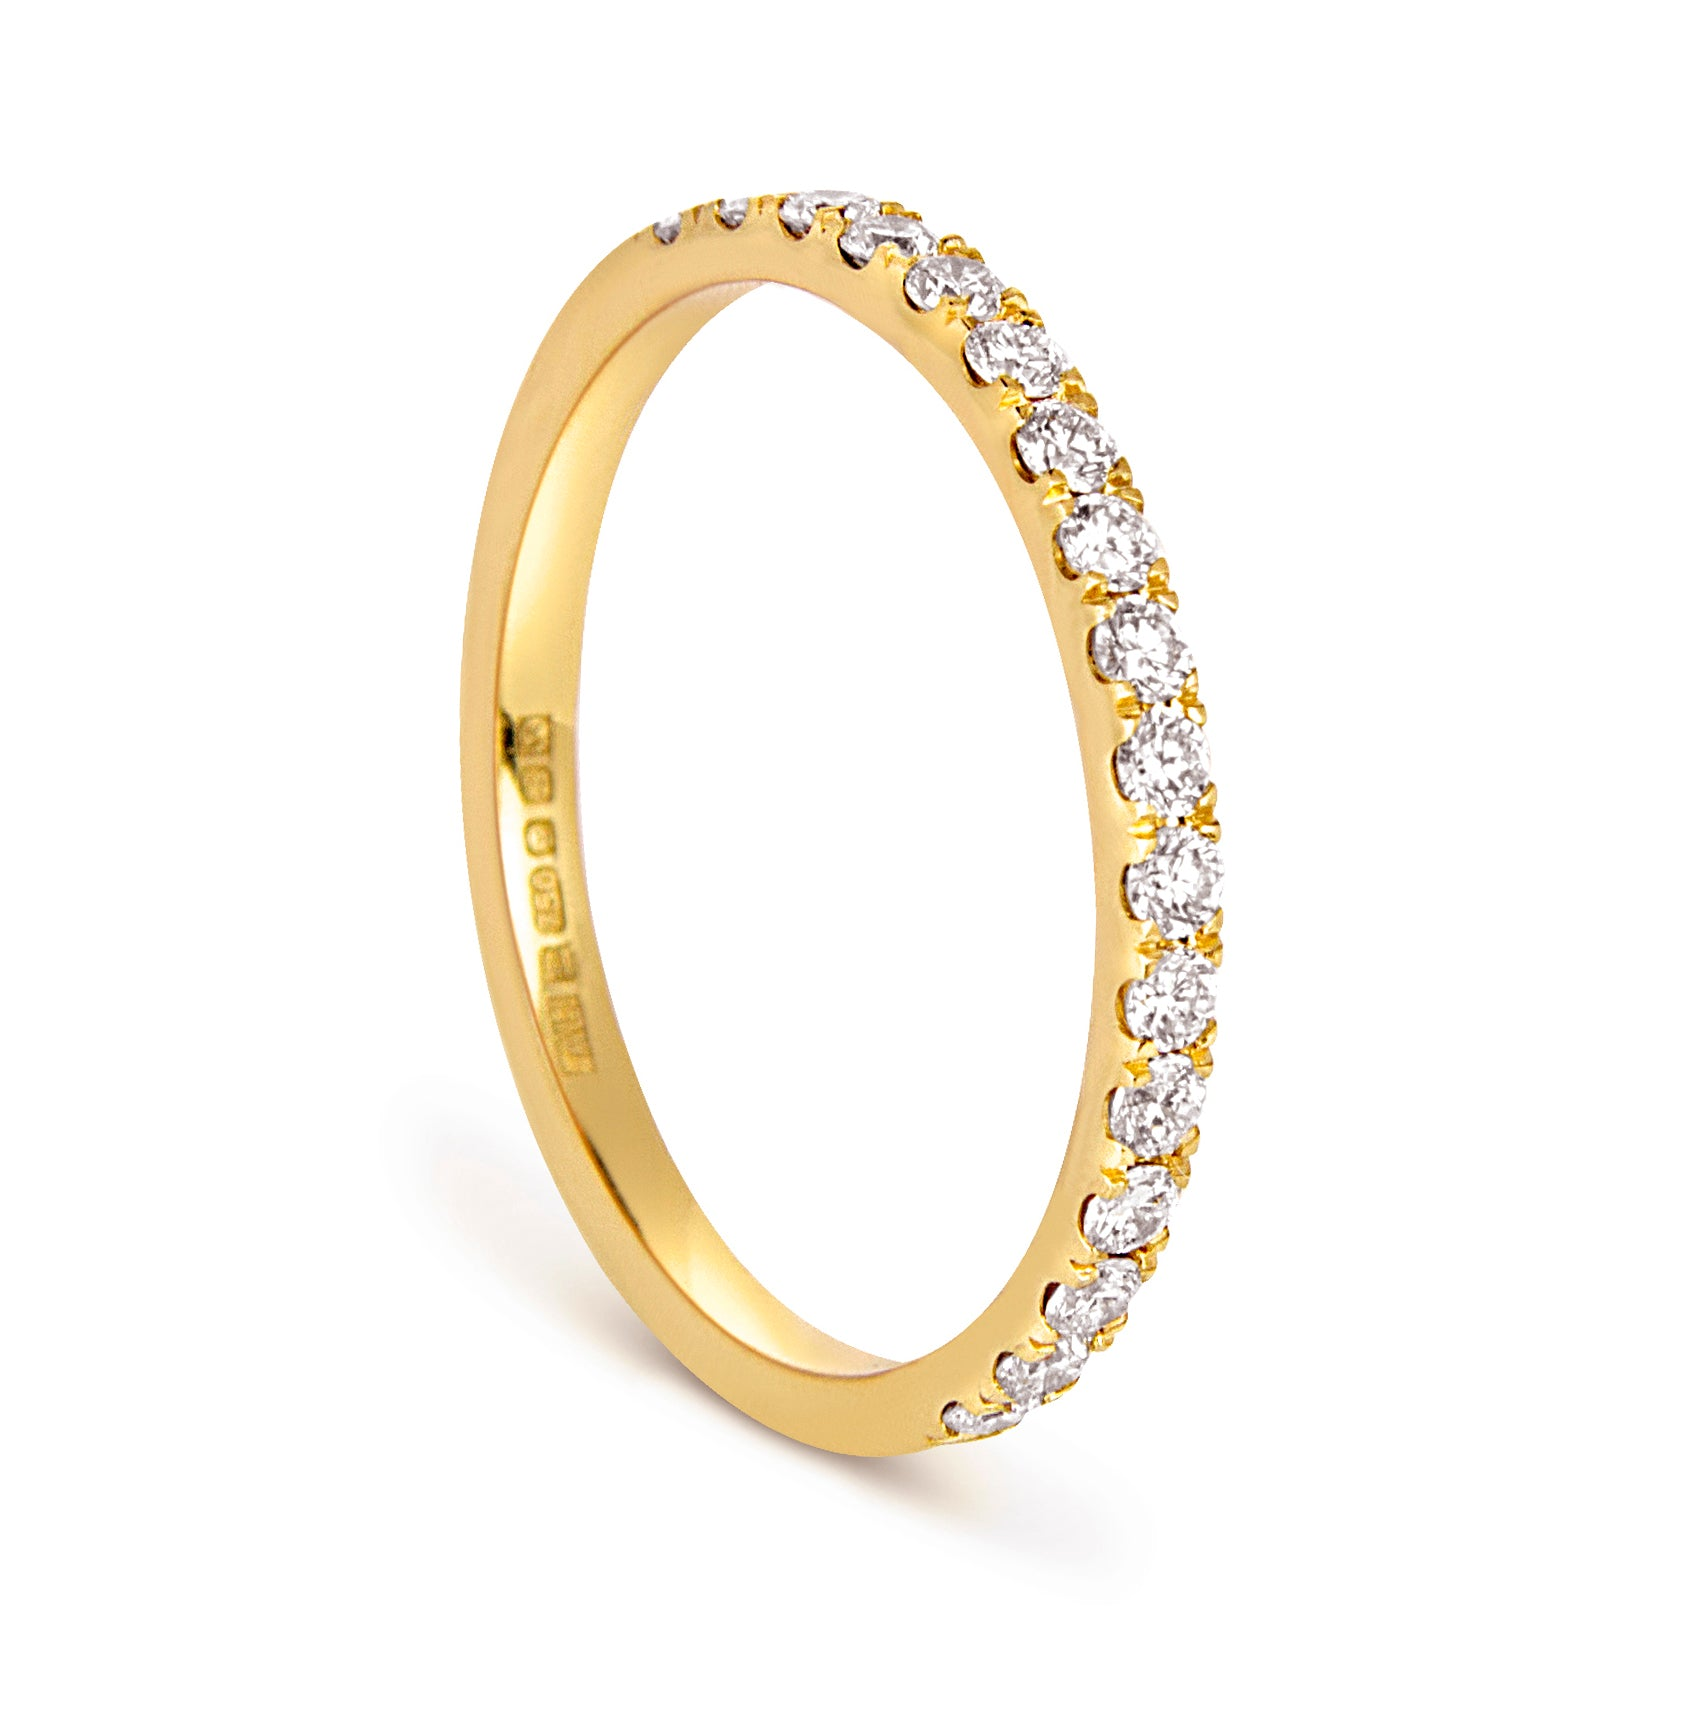 Altair Half Microset Ethical Ring, Diamond & 18ct Fairtrade Gold